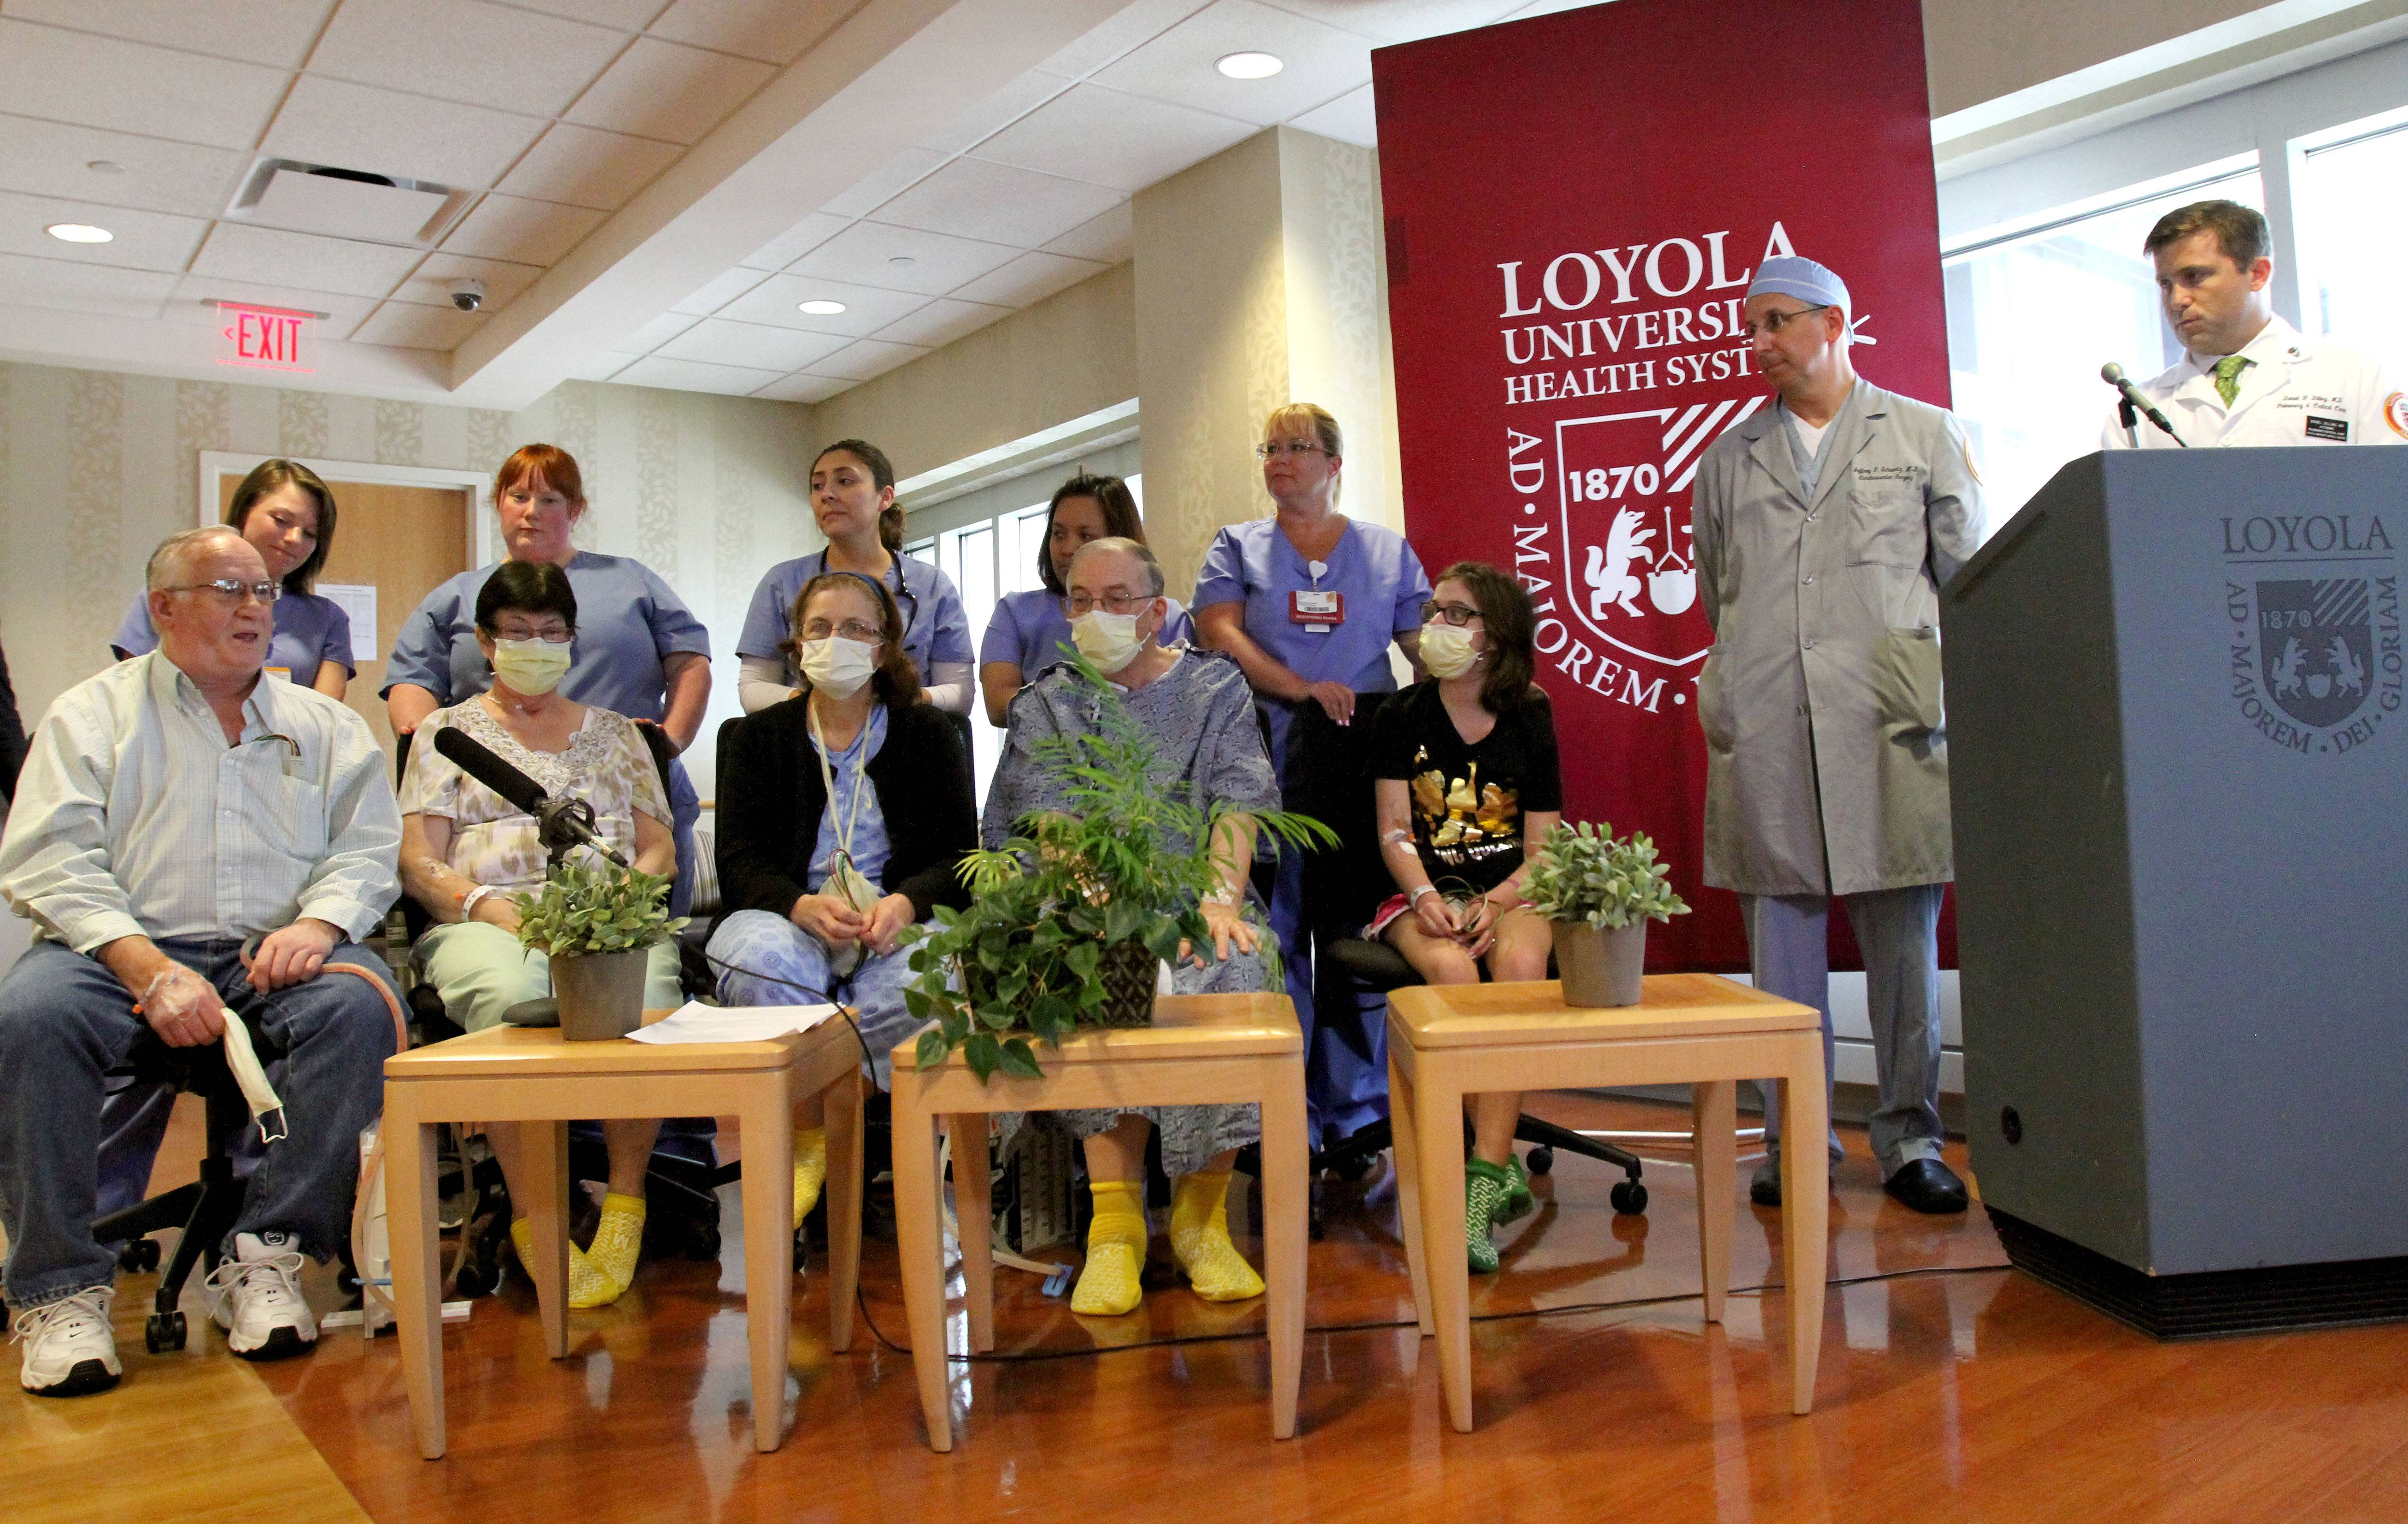 For the first time in Illinois, five successful lung transplants were performed in roughly 24 hours at Loyola University Medical Center in Maywood. The recipients, from left, are Roderick Beck of Springfield; Linda Kern of Princeton; Karen Emerich of New Carlisle, Indiana; Robert Senander of Winfield; and Julie D'Agostino, of Elmhurst. They're joined by doctors Jeffrey Schwartz and Daniel Dilling.